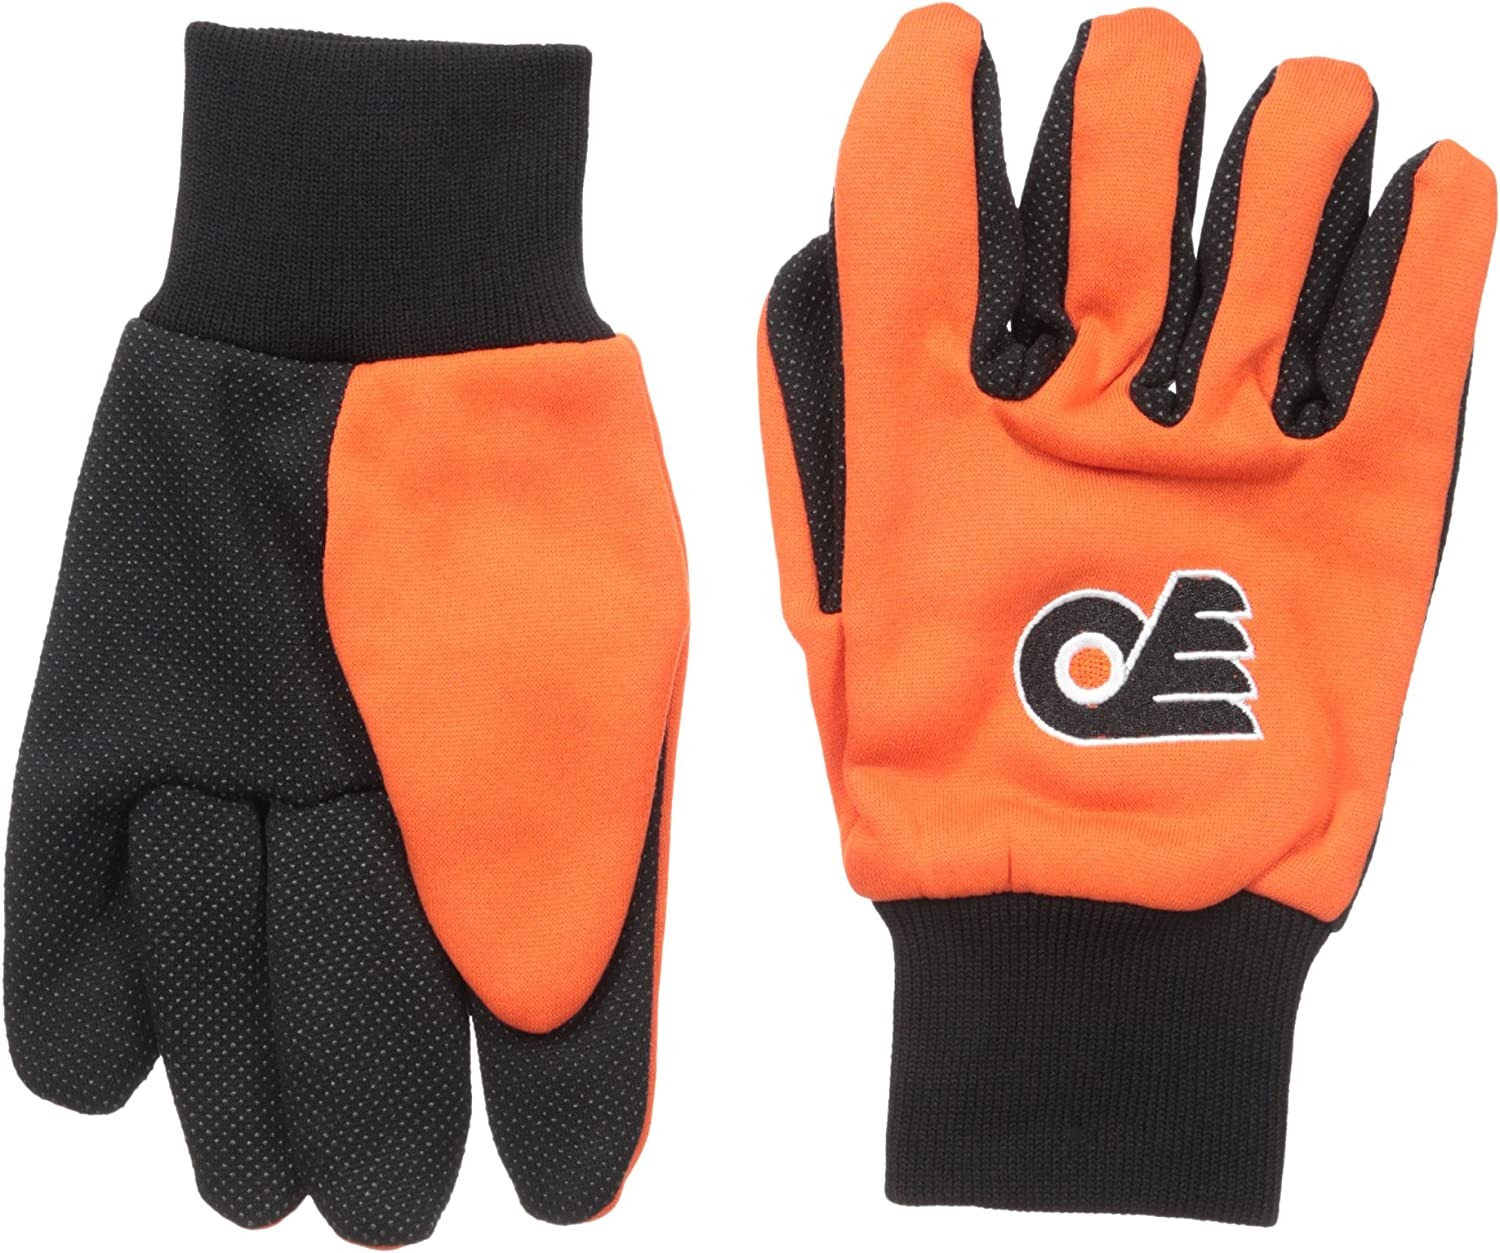 Philadelphia Flyers 2015 Utility Glove - Colored Palm